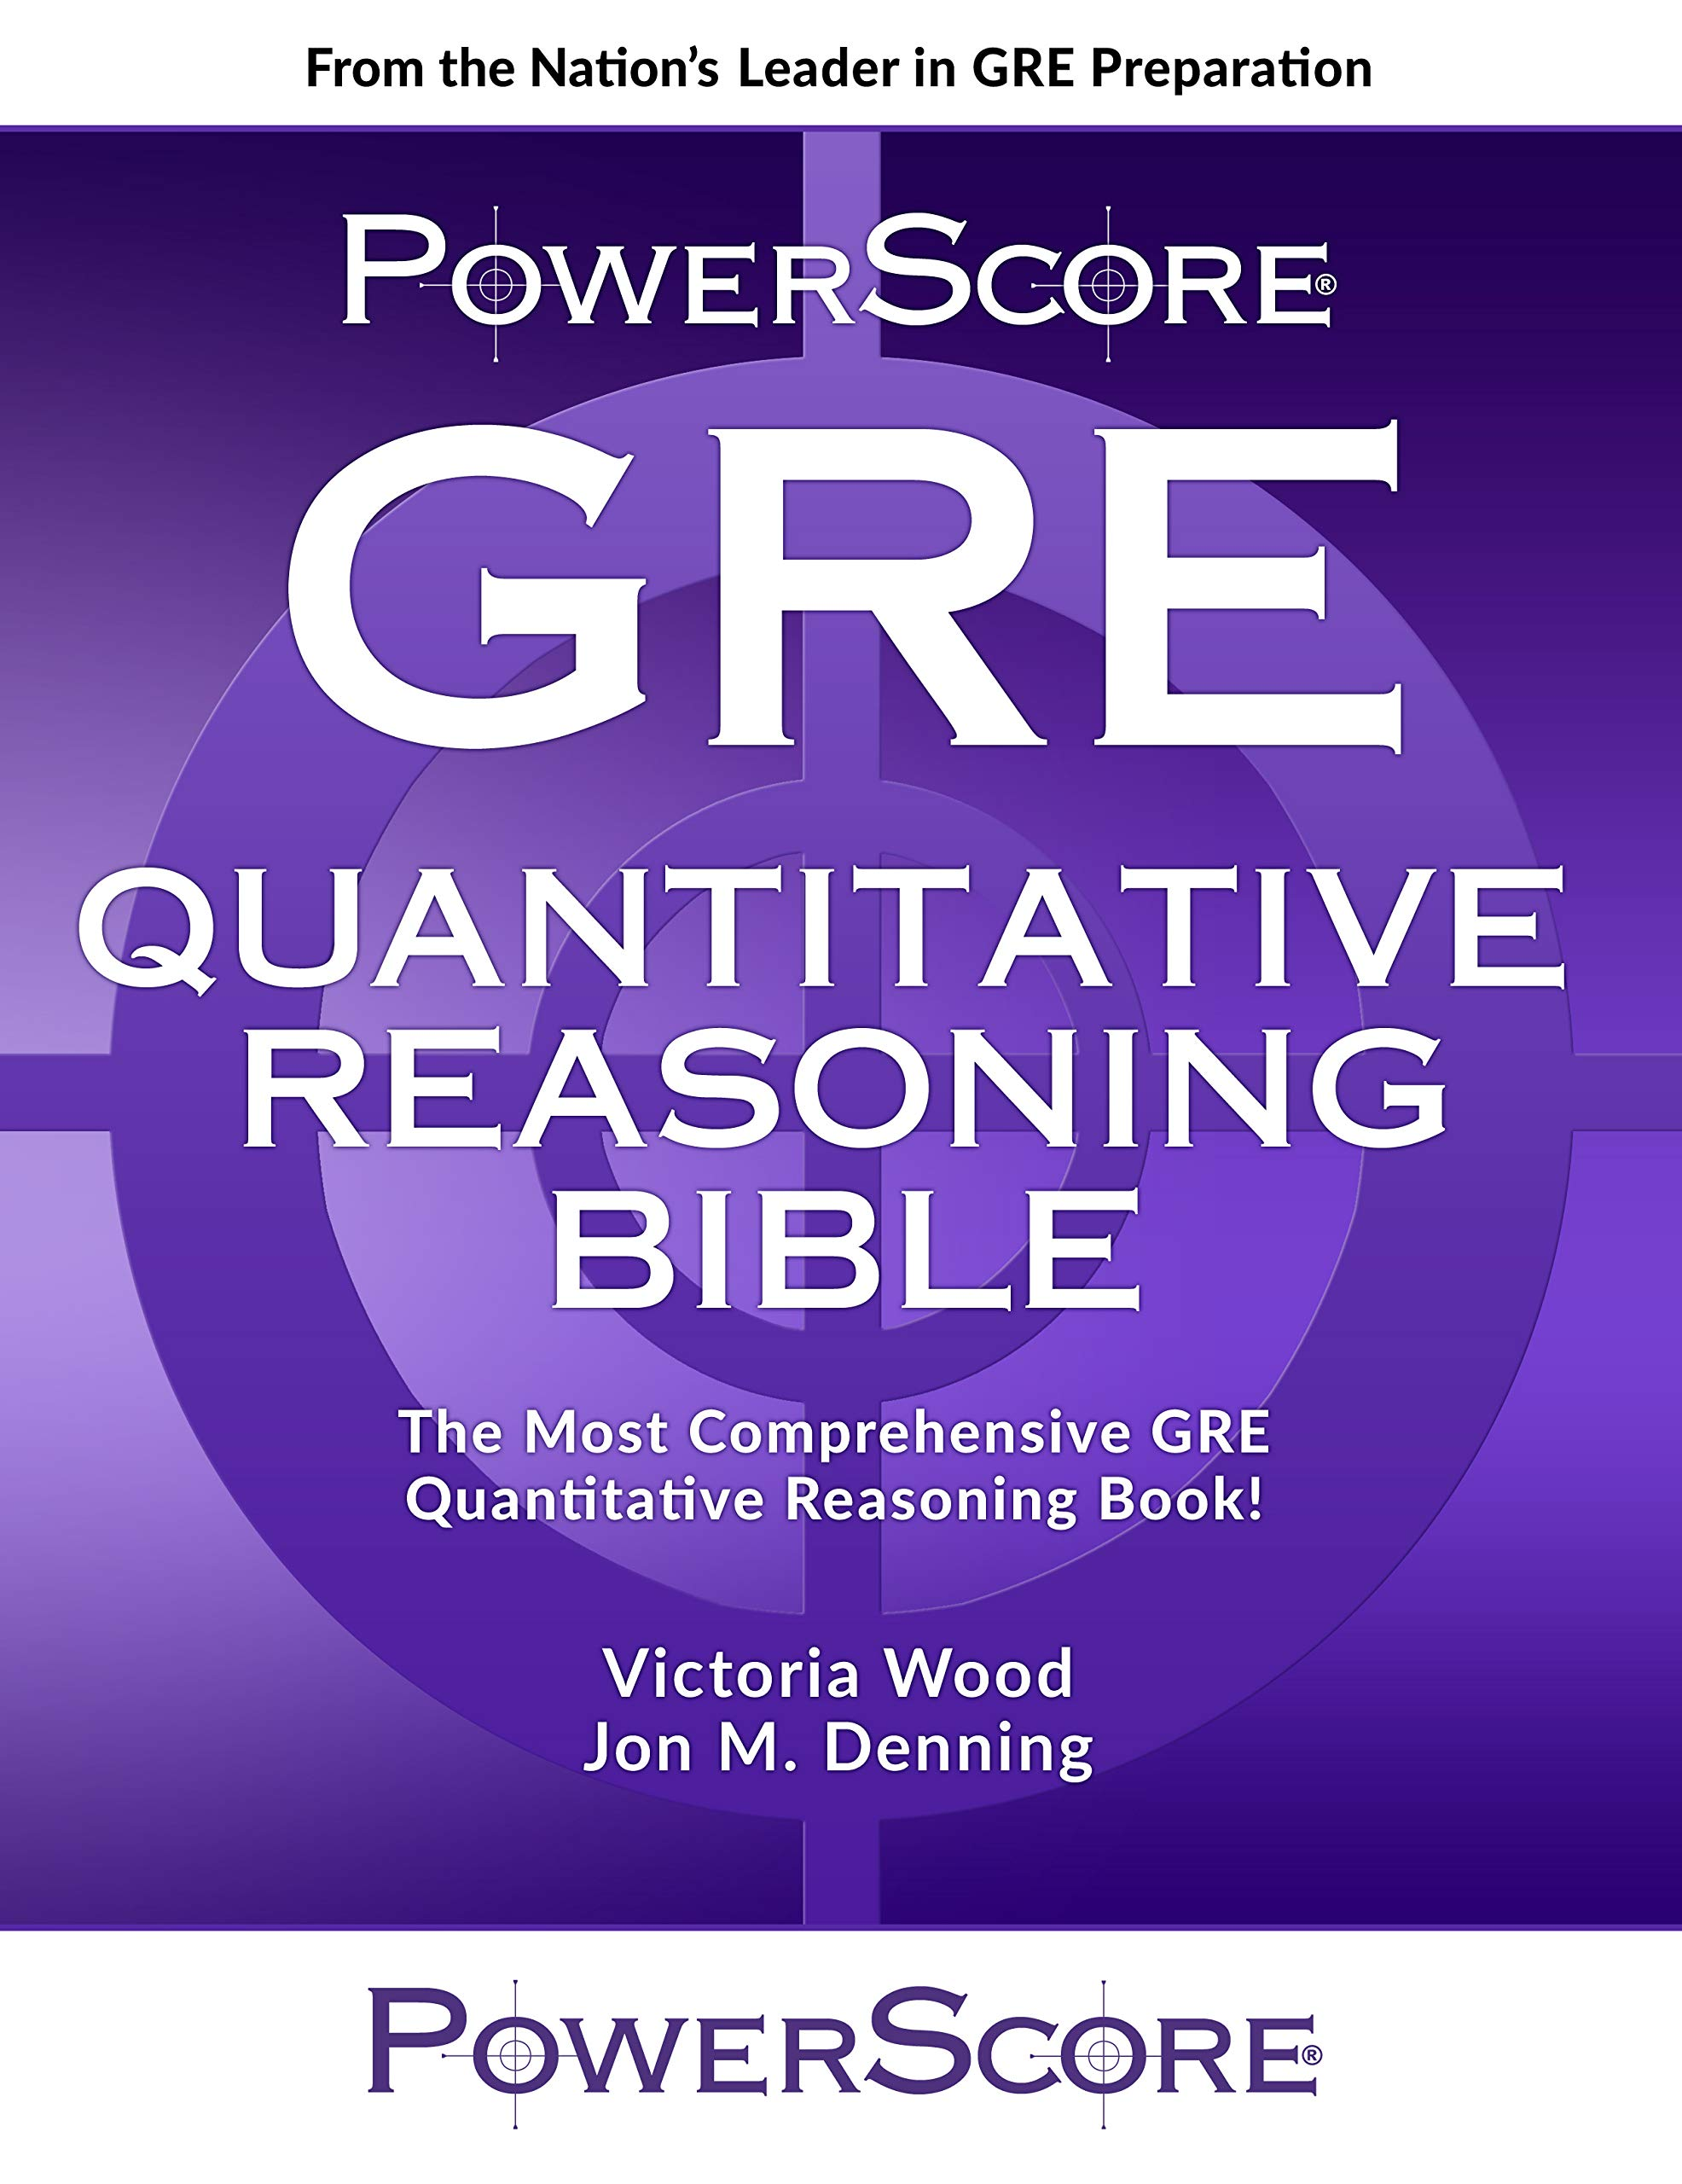 Buy The Powerscore Gre Quantitative Reasoning Bible Powerscore Gre Bible Book Online At Low Prices In India The Powerscore Gre Quantitative Reasoning Bible Powerscore Gre Bible Reviews Ratings Amazon In